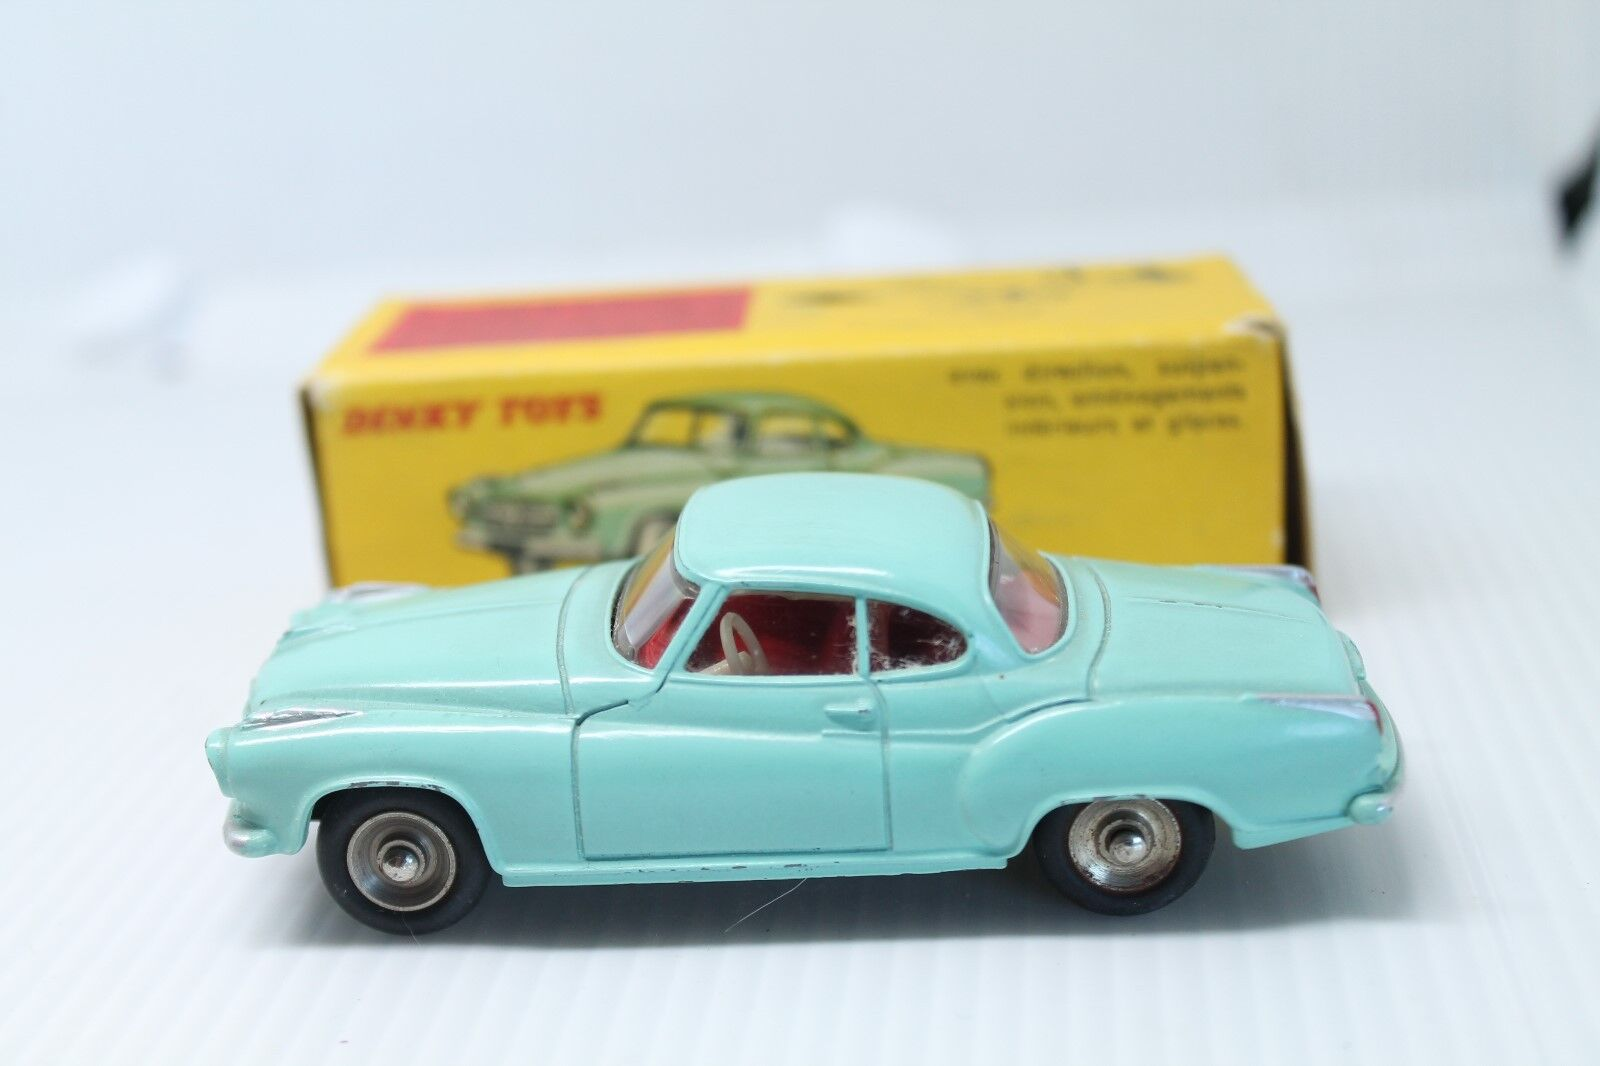 DINKY TOYS 549  BORGWARD ISABELLA COUPE  1 43  OVP ( FRENCH DINKY )